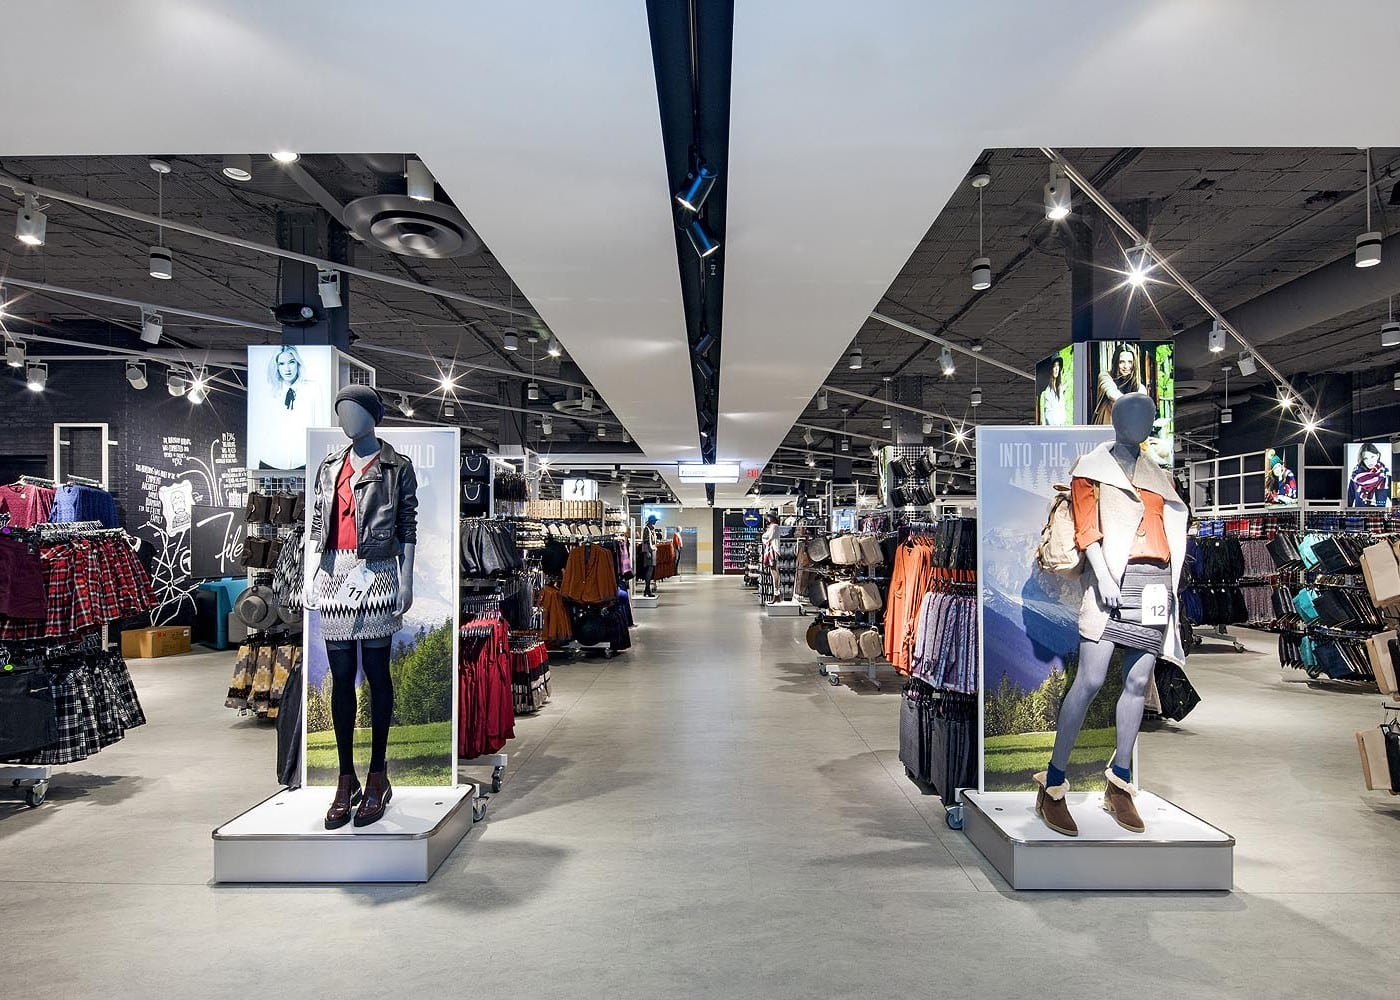 retail lighting design: Primark fitting rooms ladieswear shop floor